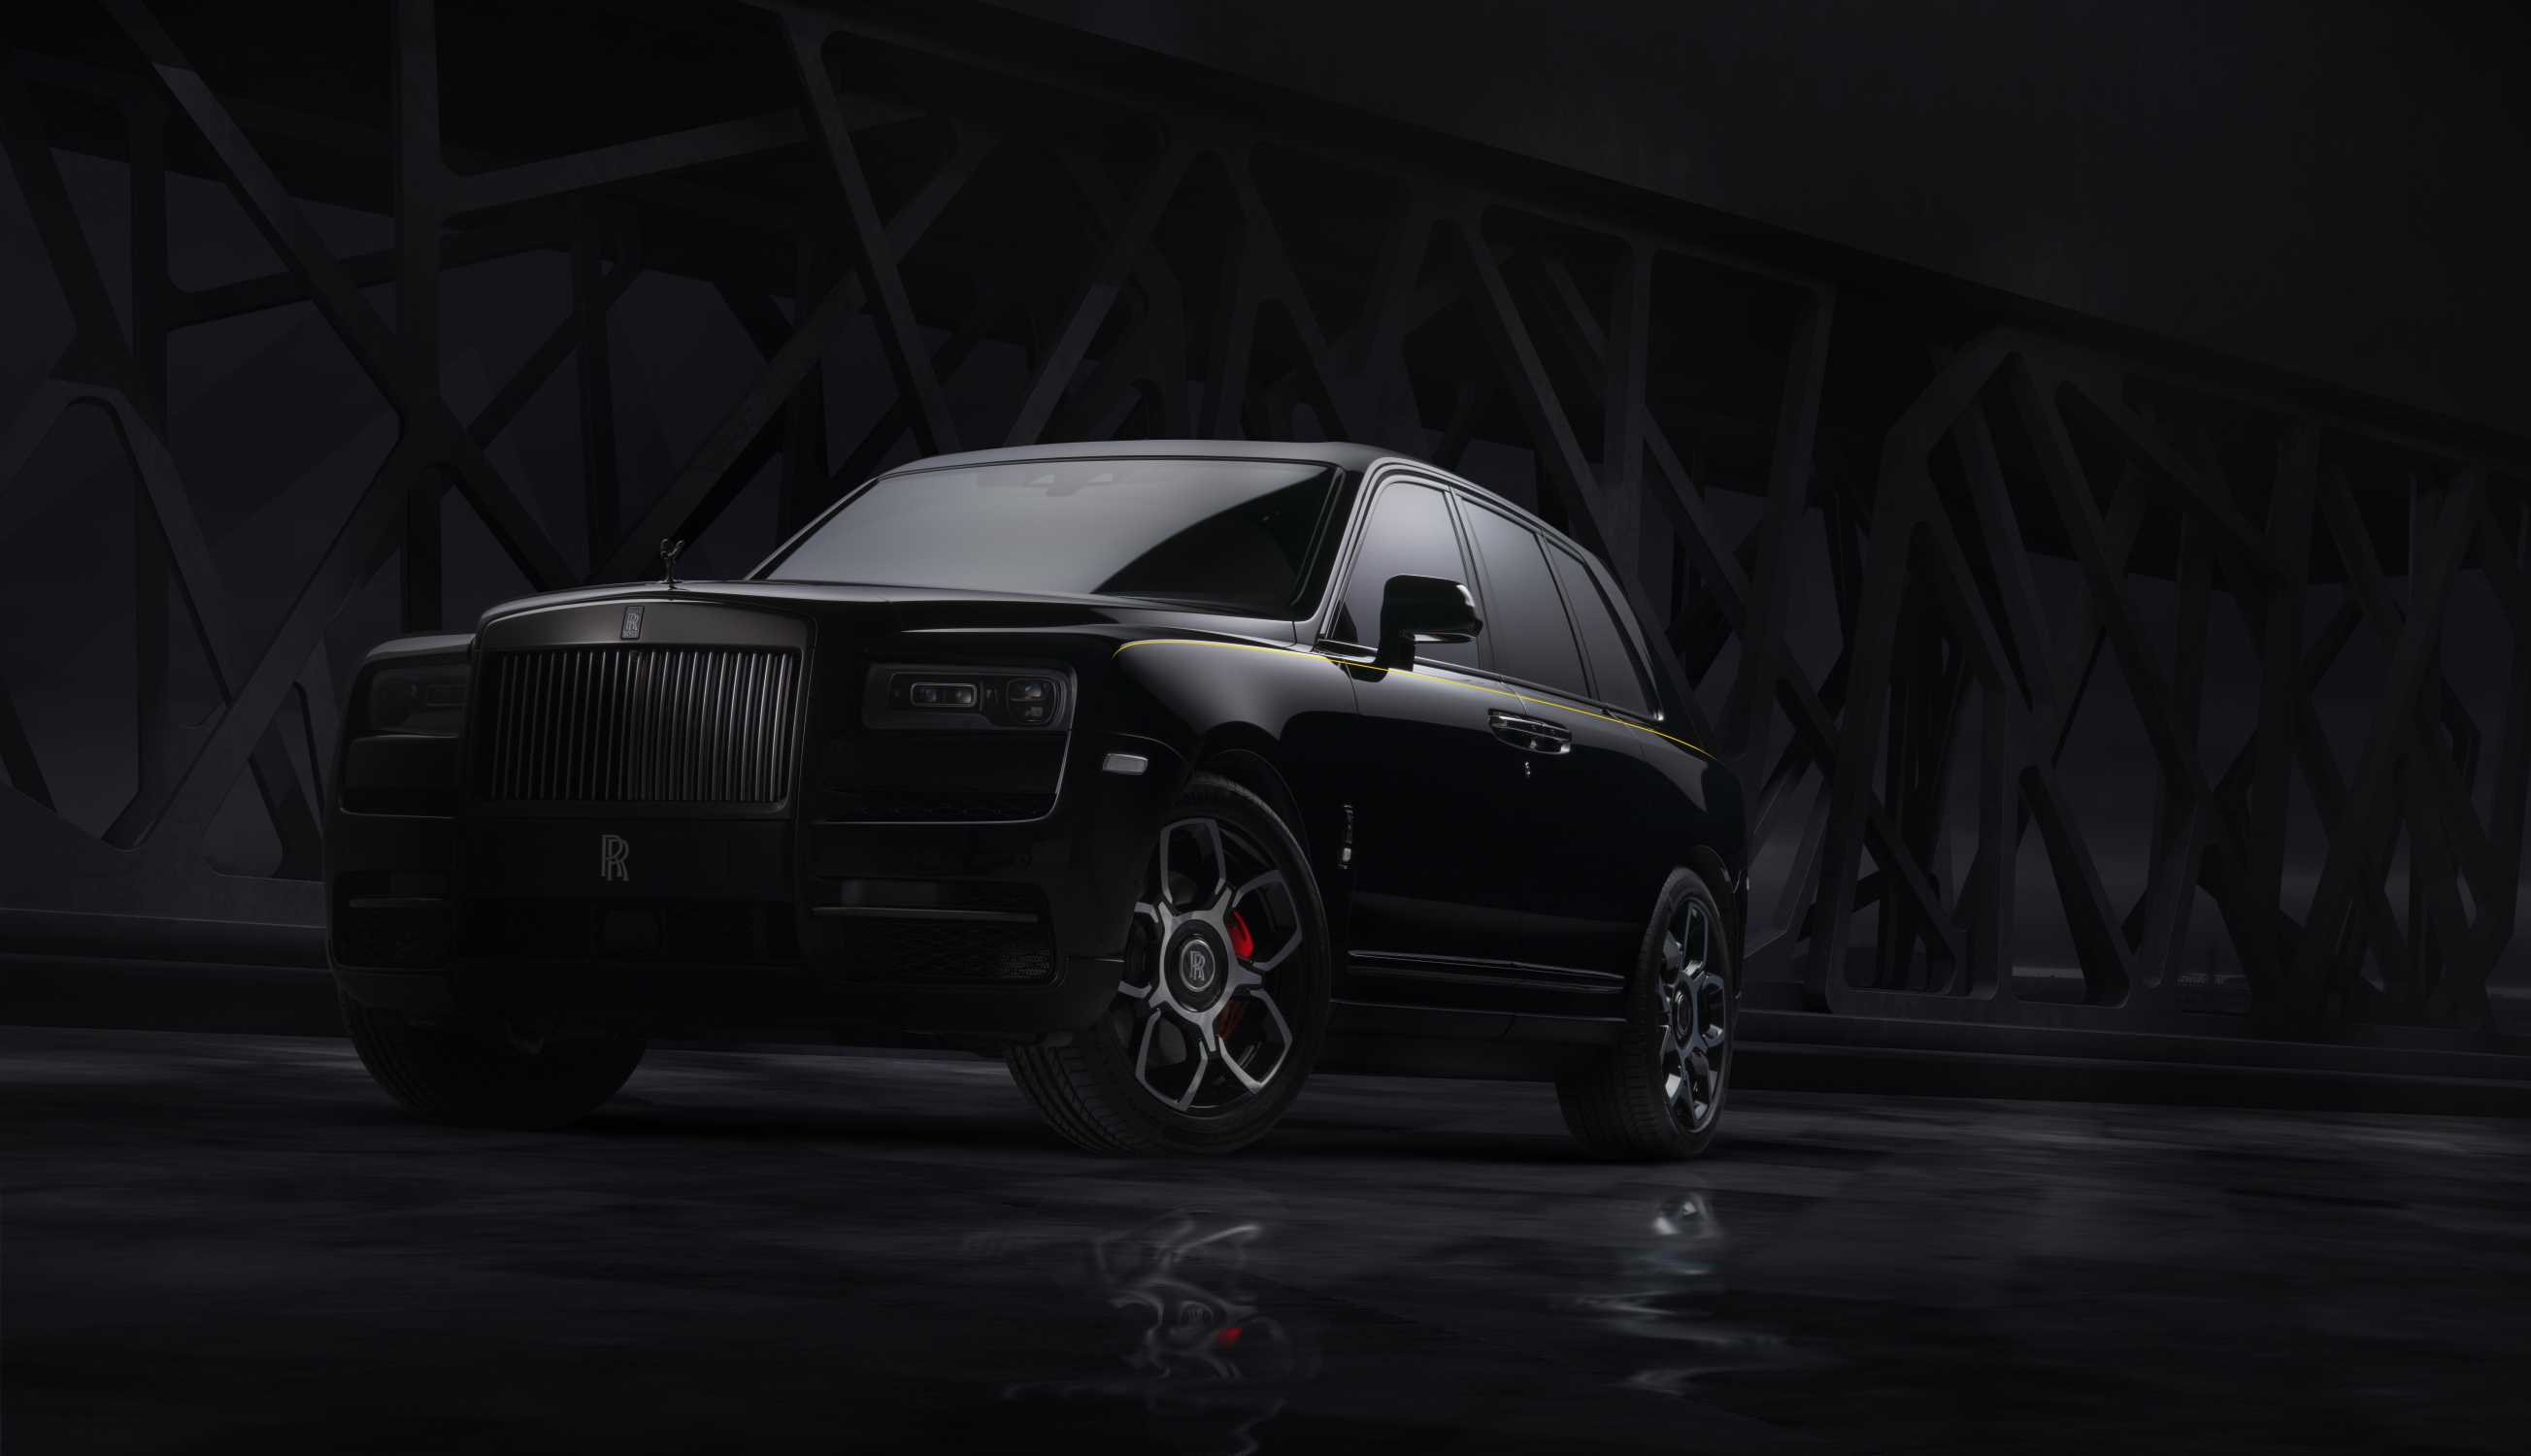 ROLLS-ROYCE MOTOR CARS' CULLINAN BLACK BADGE